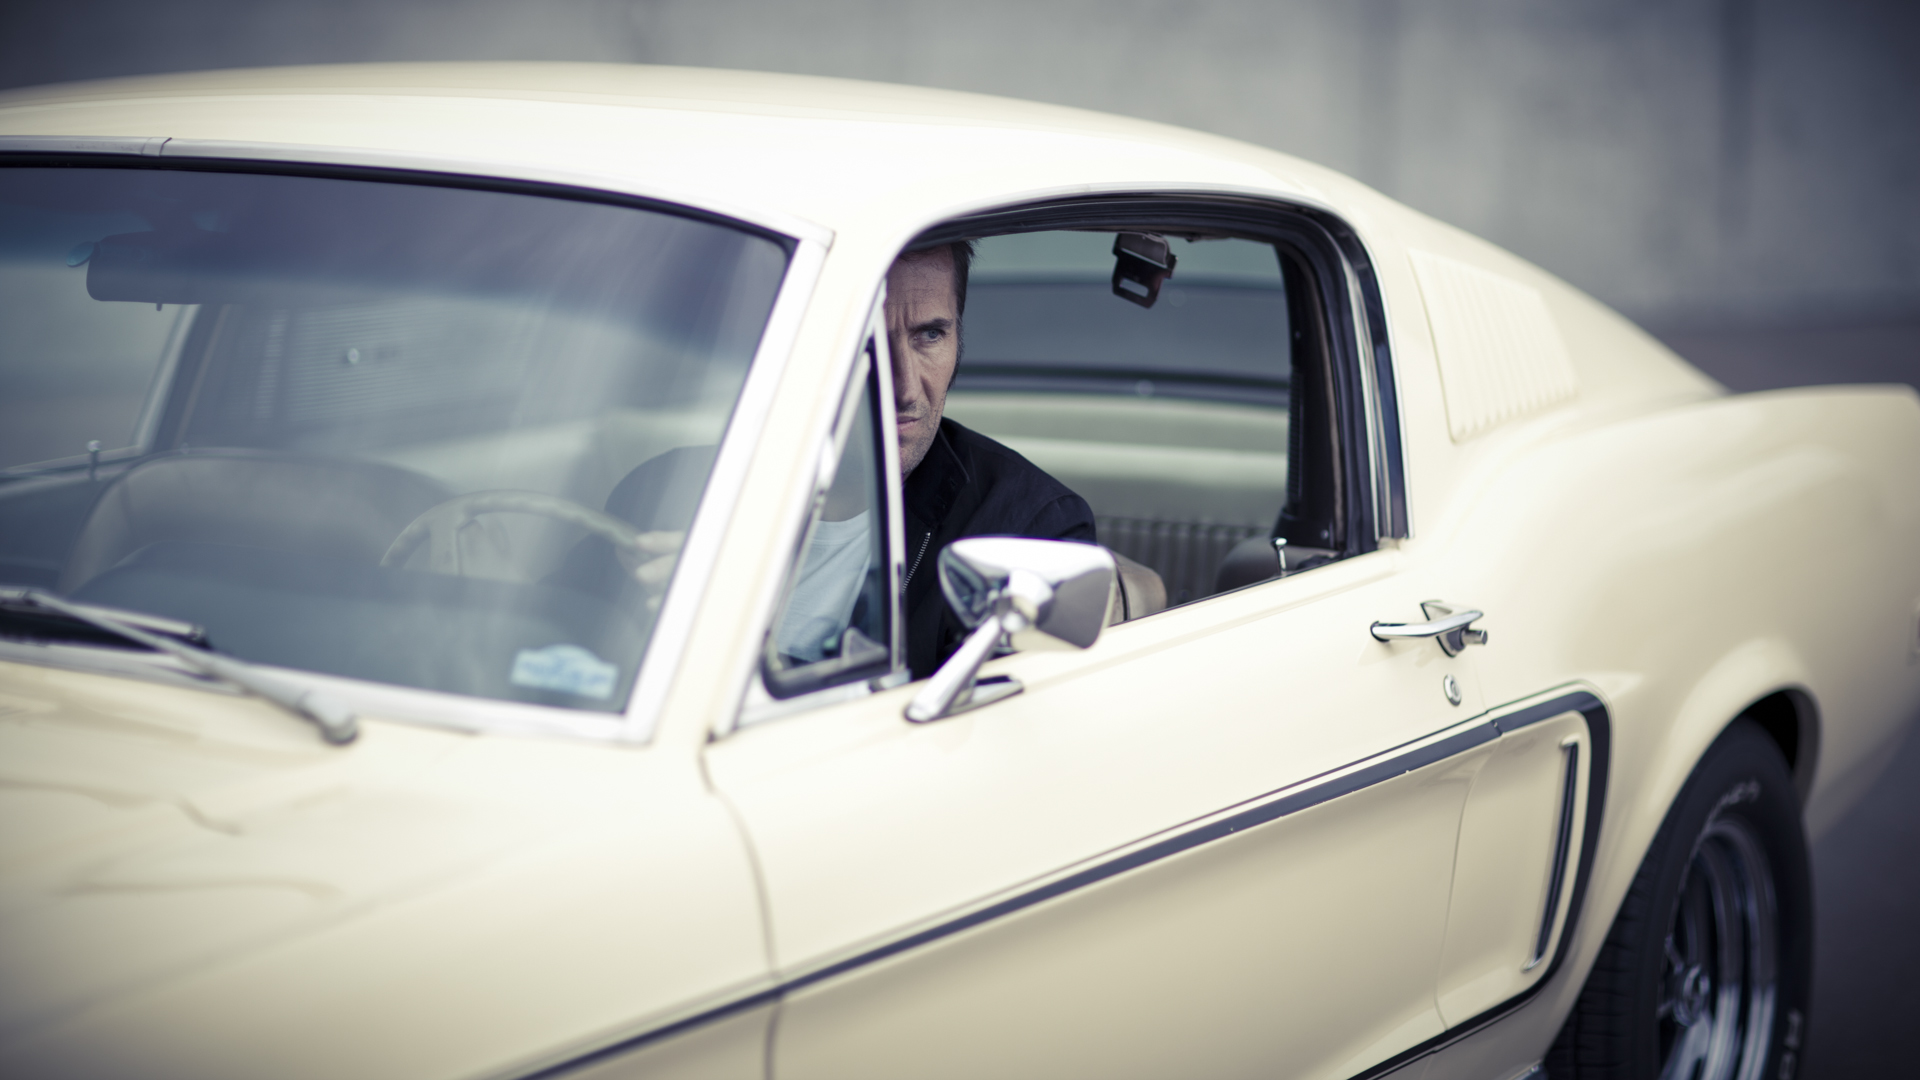 Pascal & his Ford Mustang / Laurent Nivalle (7)